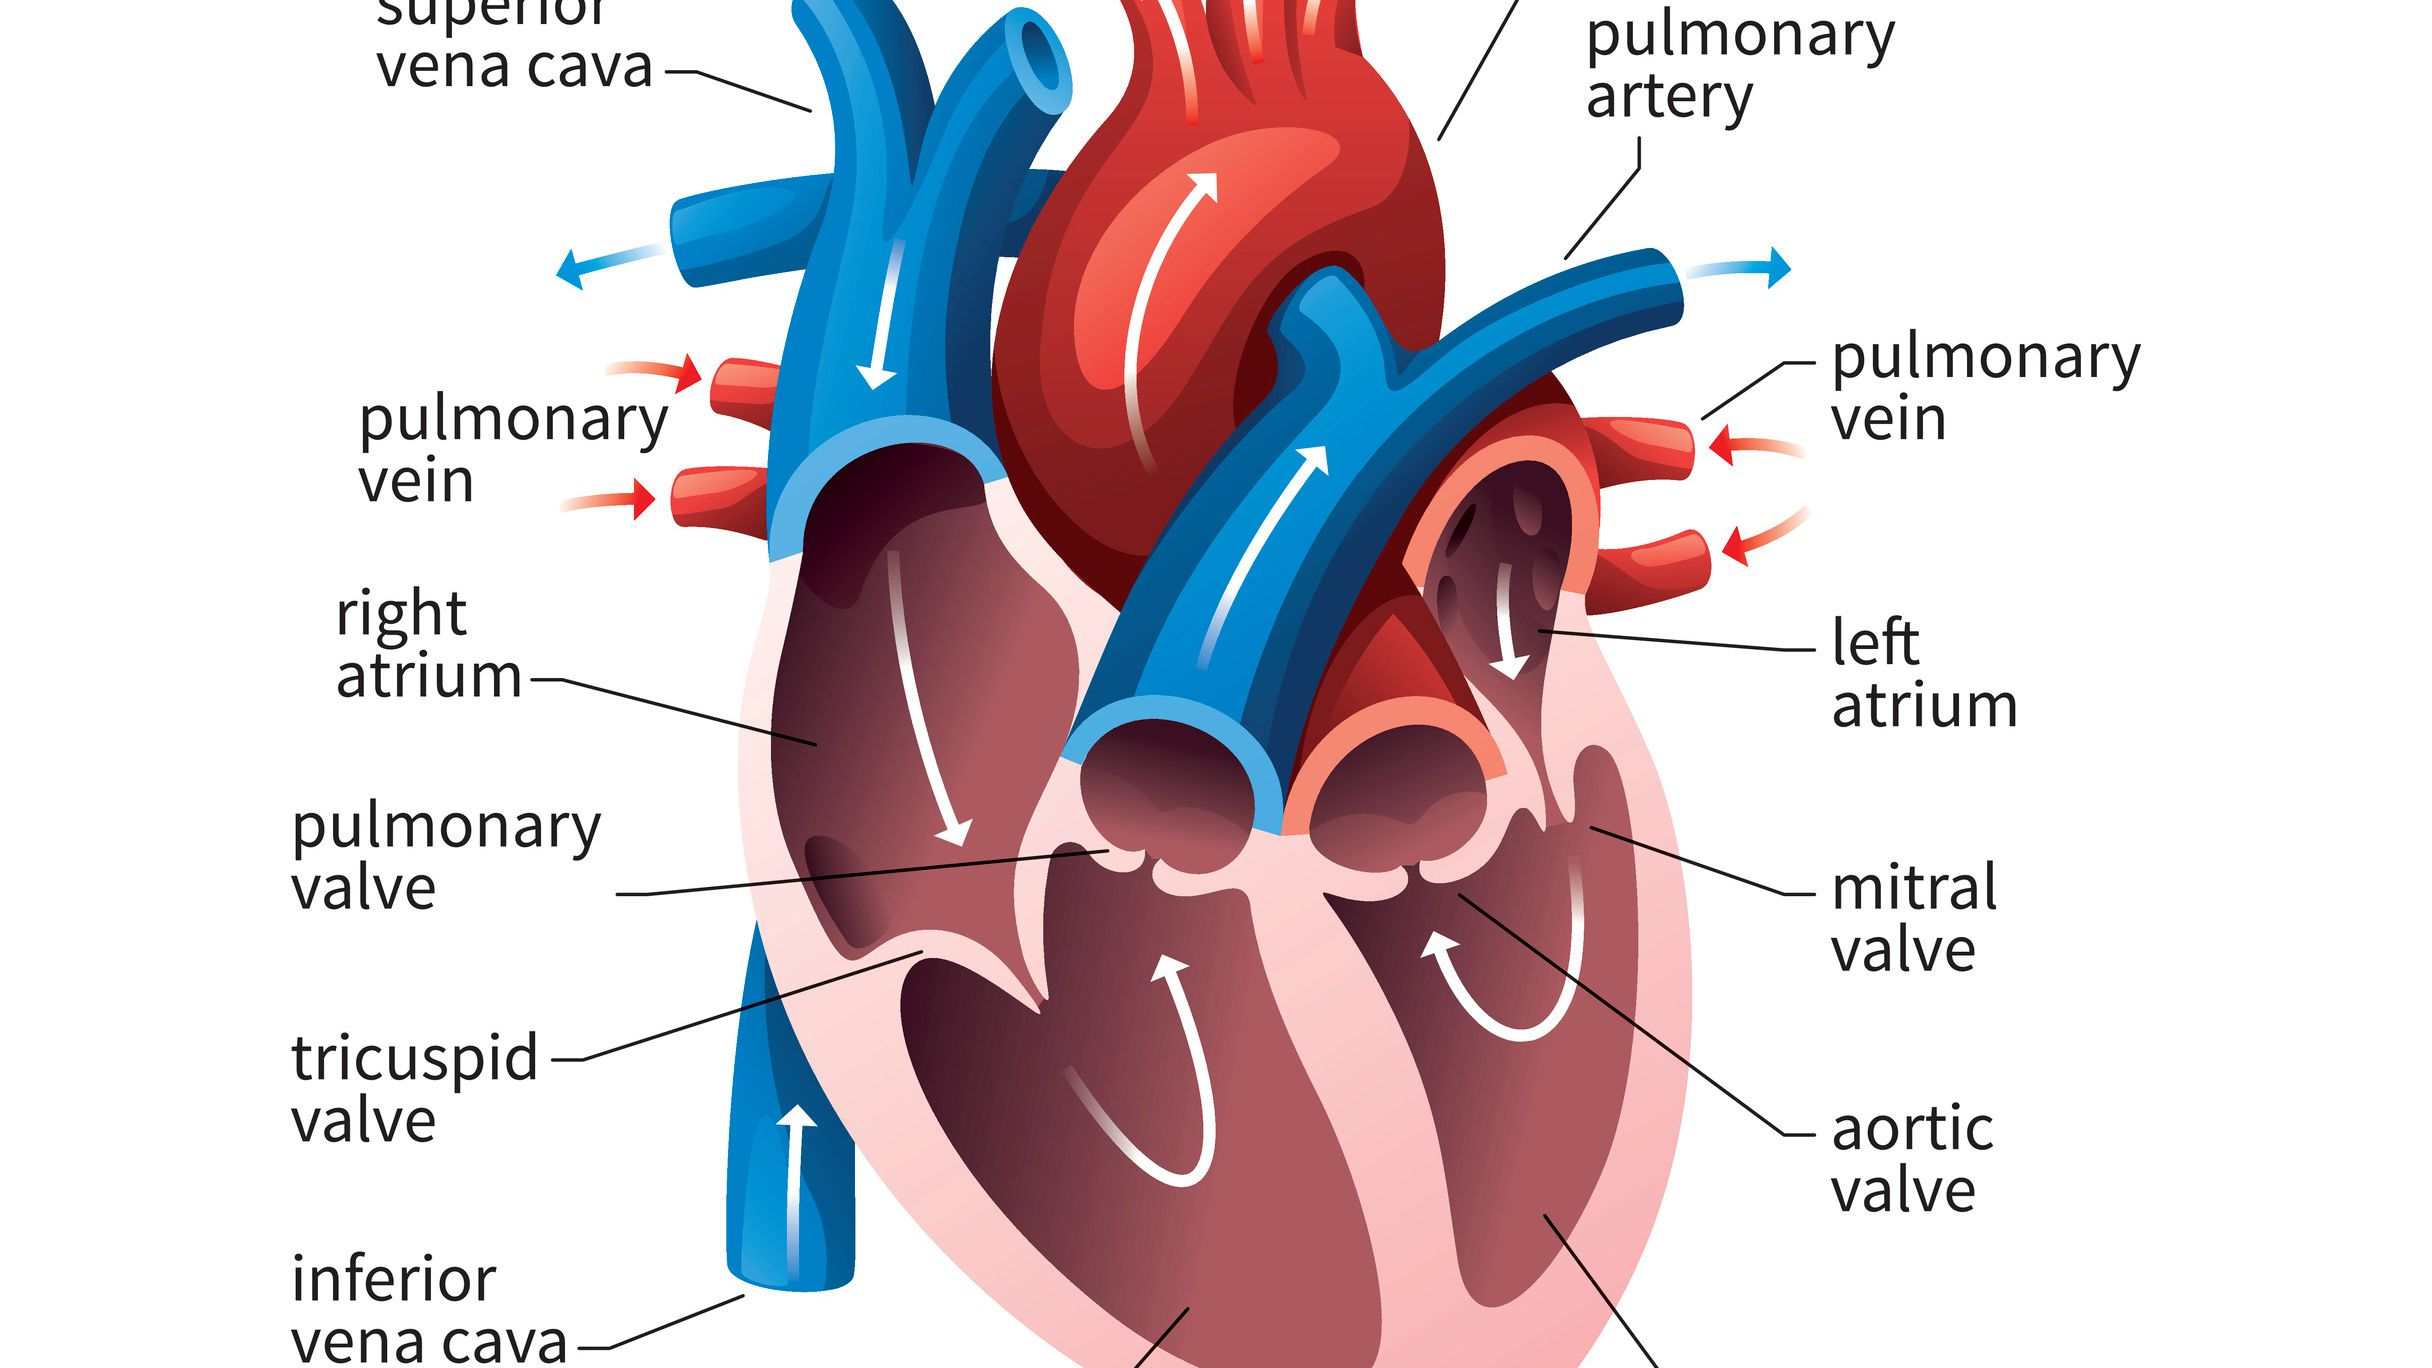 How Many Chambers Does A Fish Heart Have - slidesharetrick